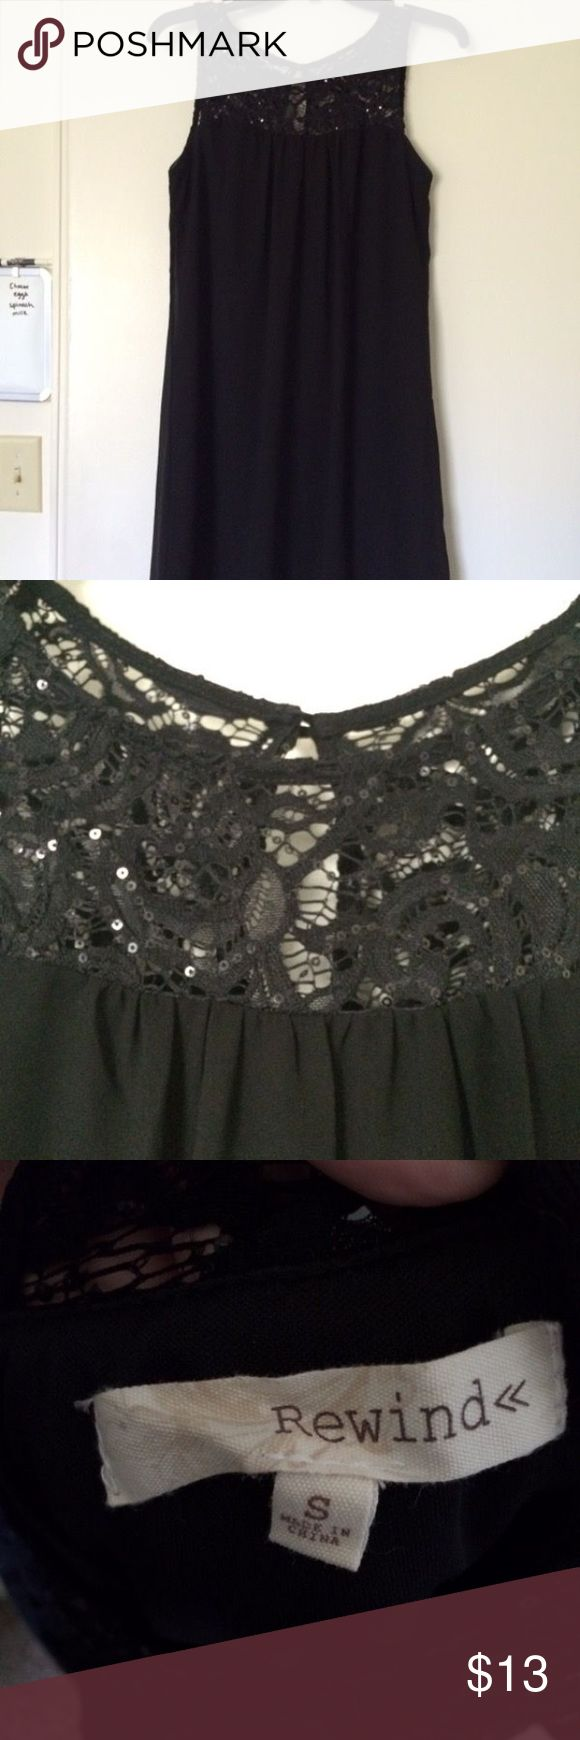 Black shift dress Black shift dress with lace and sequin detail. Bought from Kohl's. Size small. Rewind Dresses